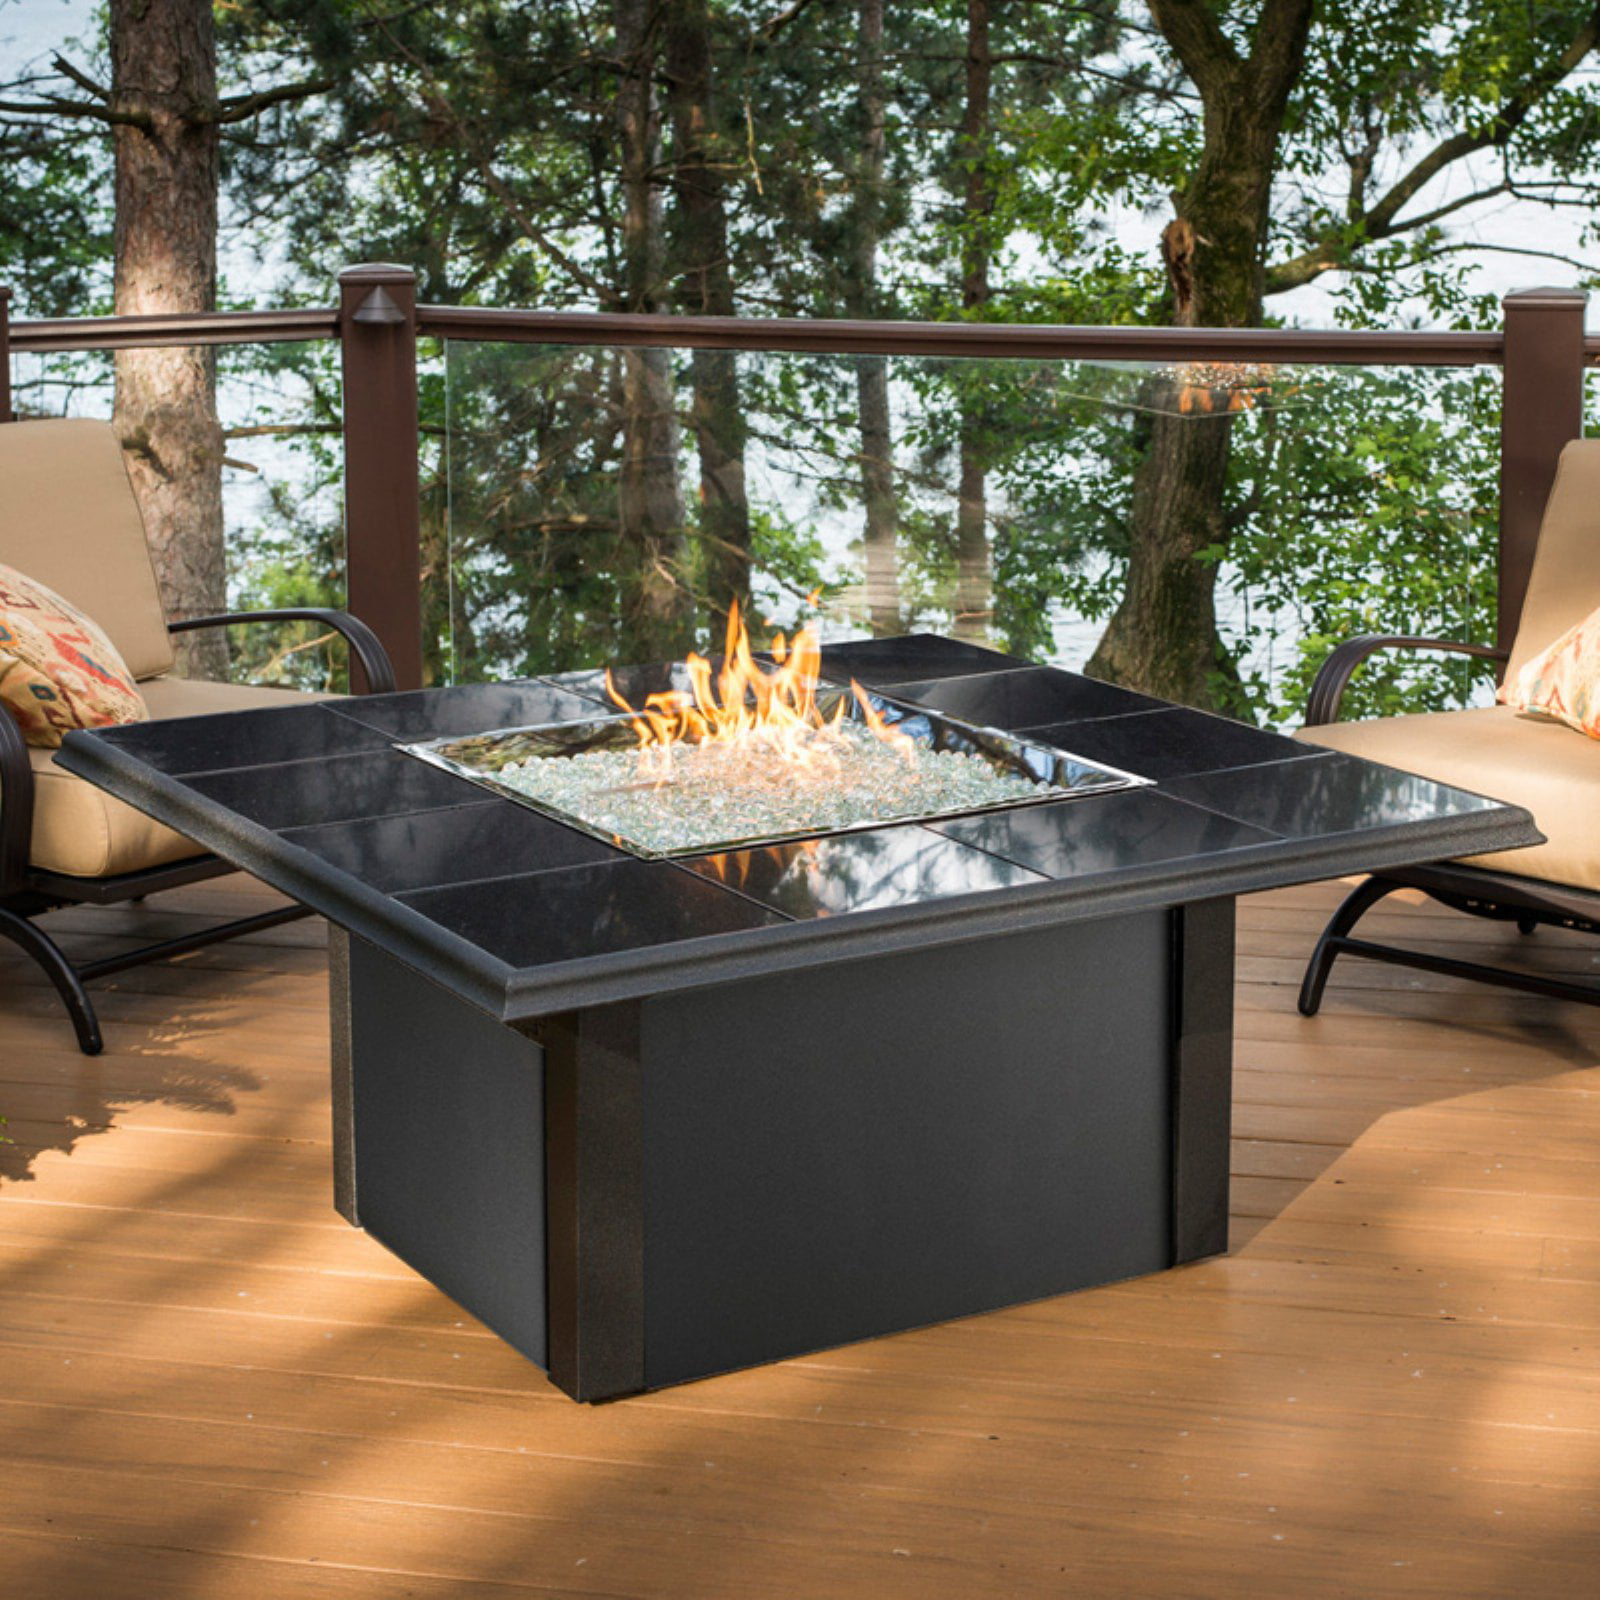 Outdoor GreatRoom Napa Valley Square Firepit Table by Firepits